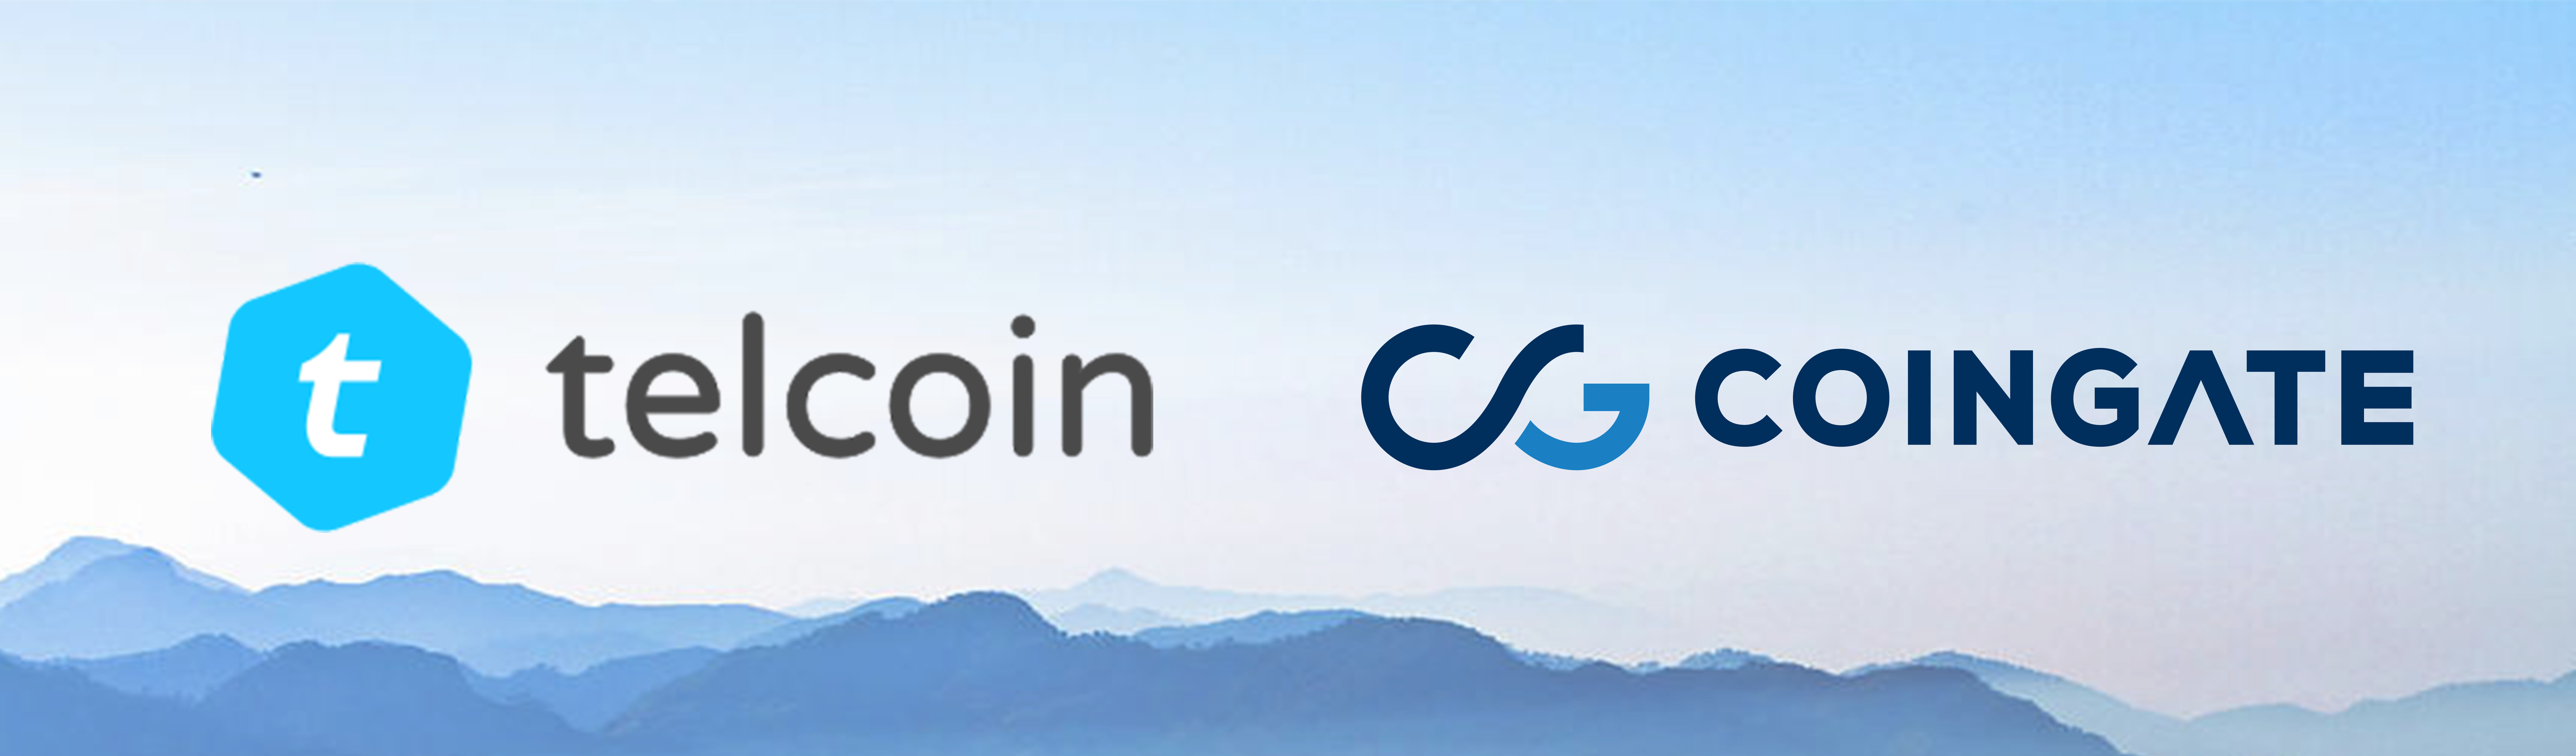 Telcoin partners with CoinGate